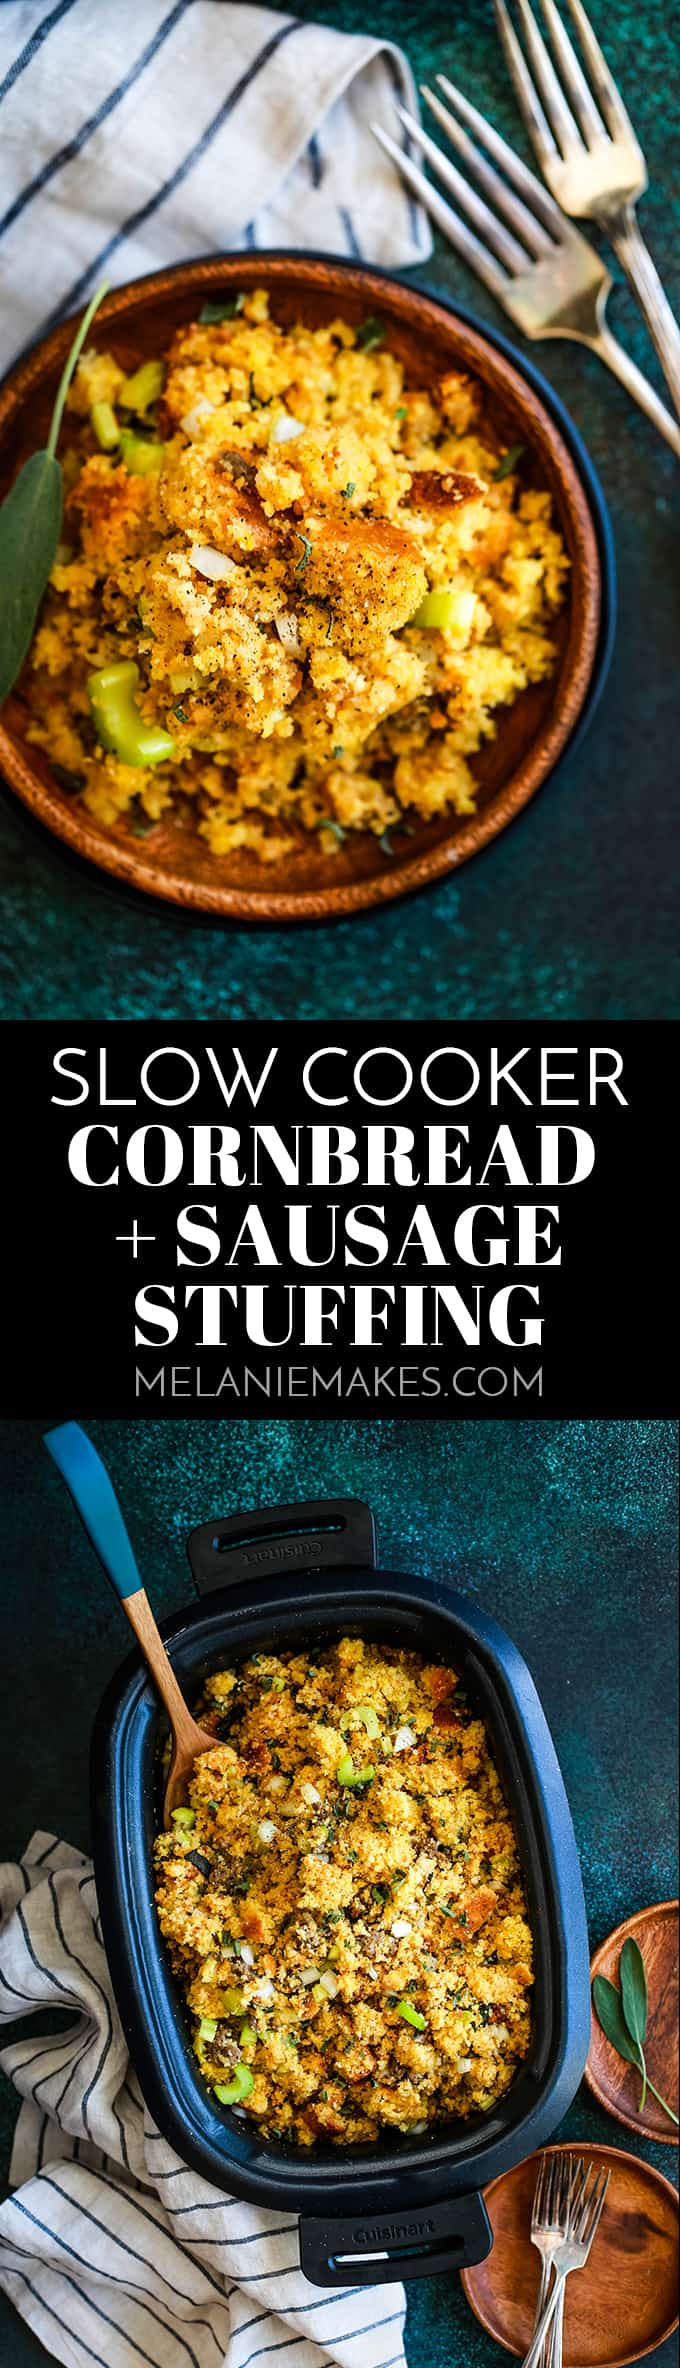 This Slow Cooker Cornbread and Sausage Stuffing knocks the socks off anything you'd buy from a box at the grocery store, yet is just as easy to prepare.